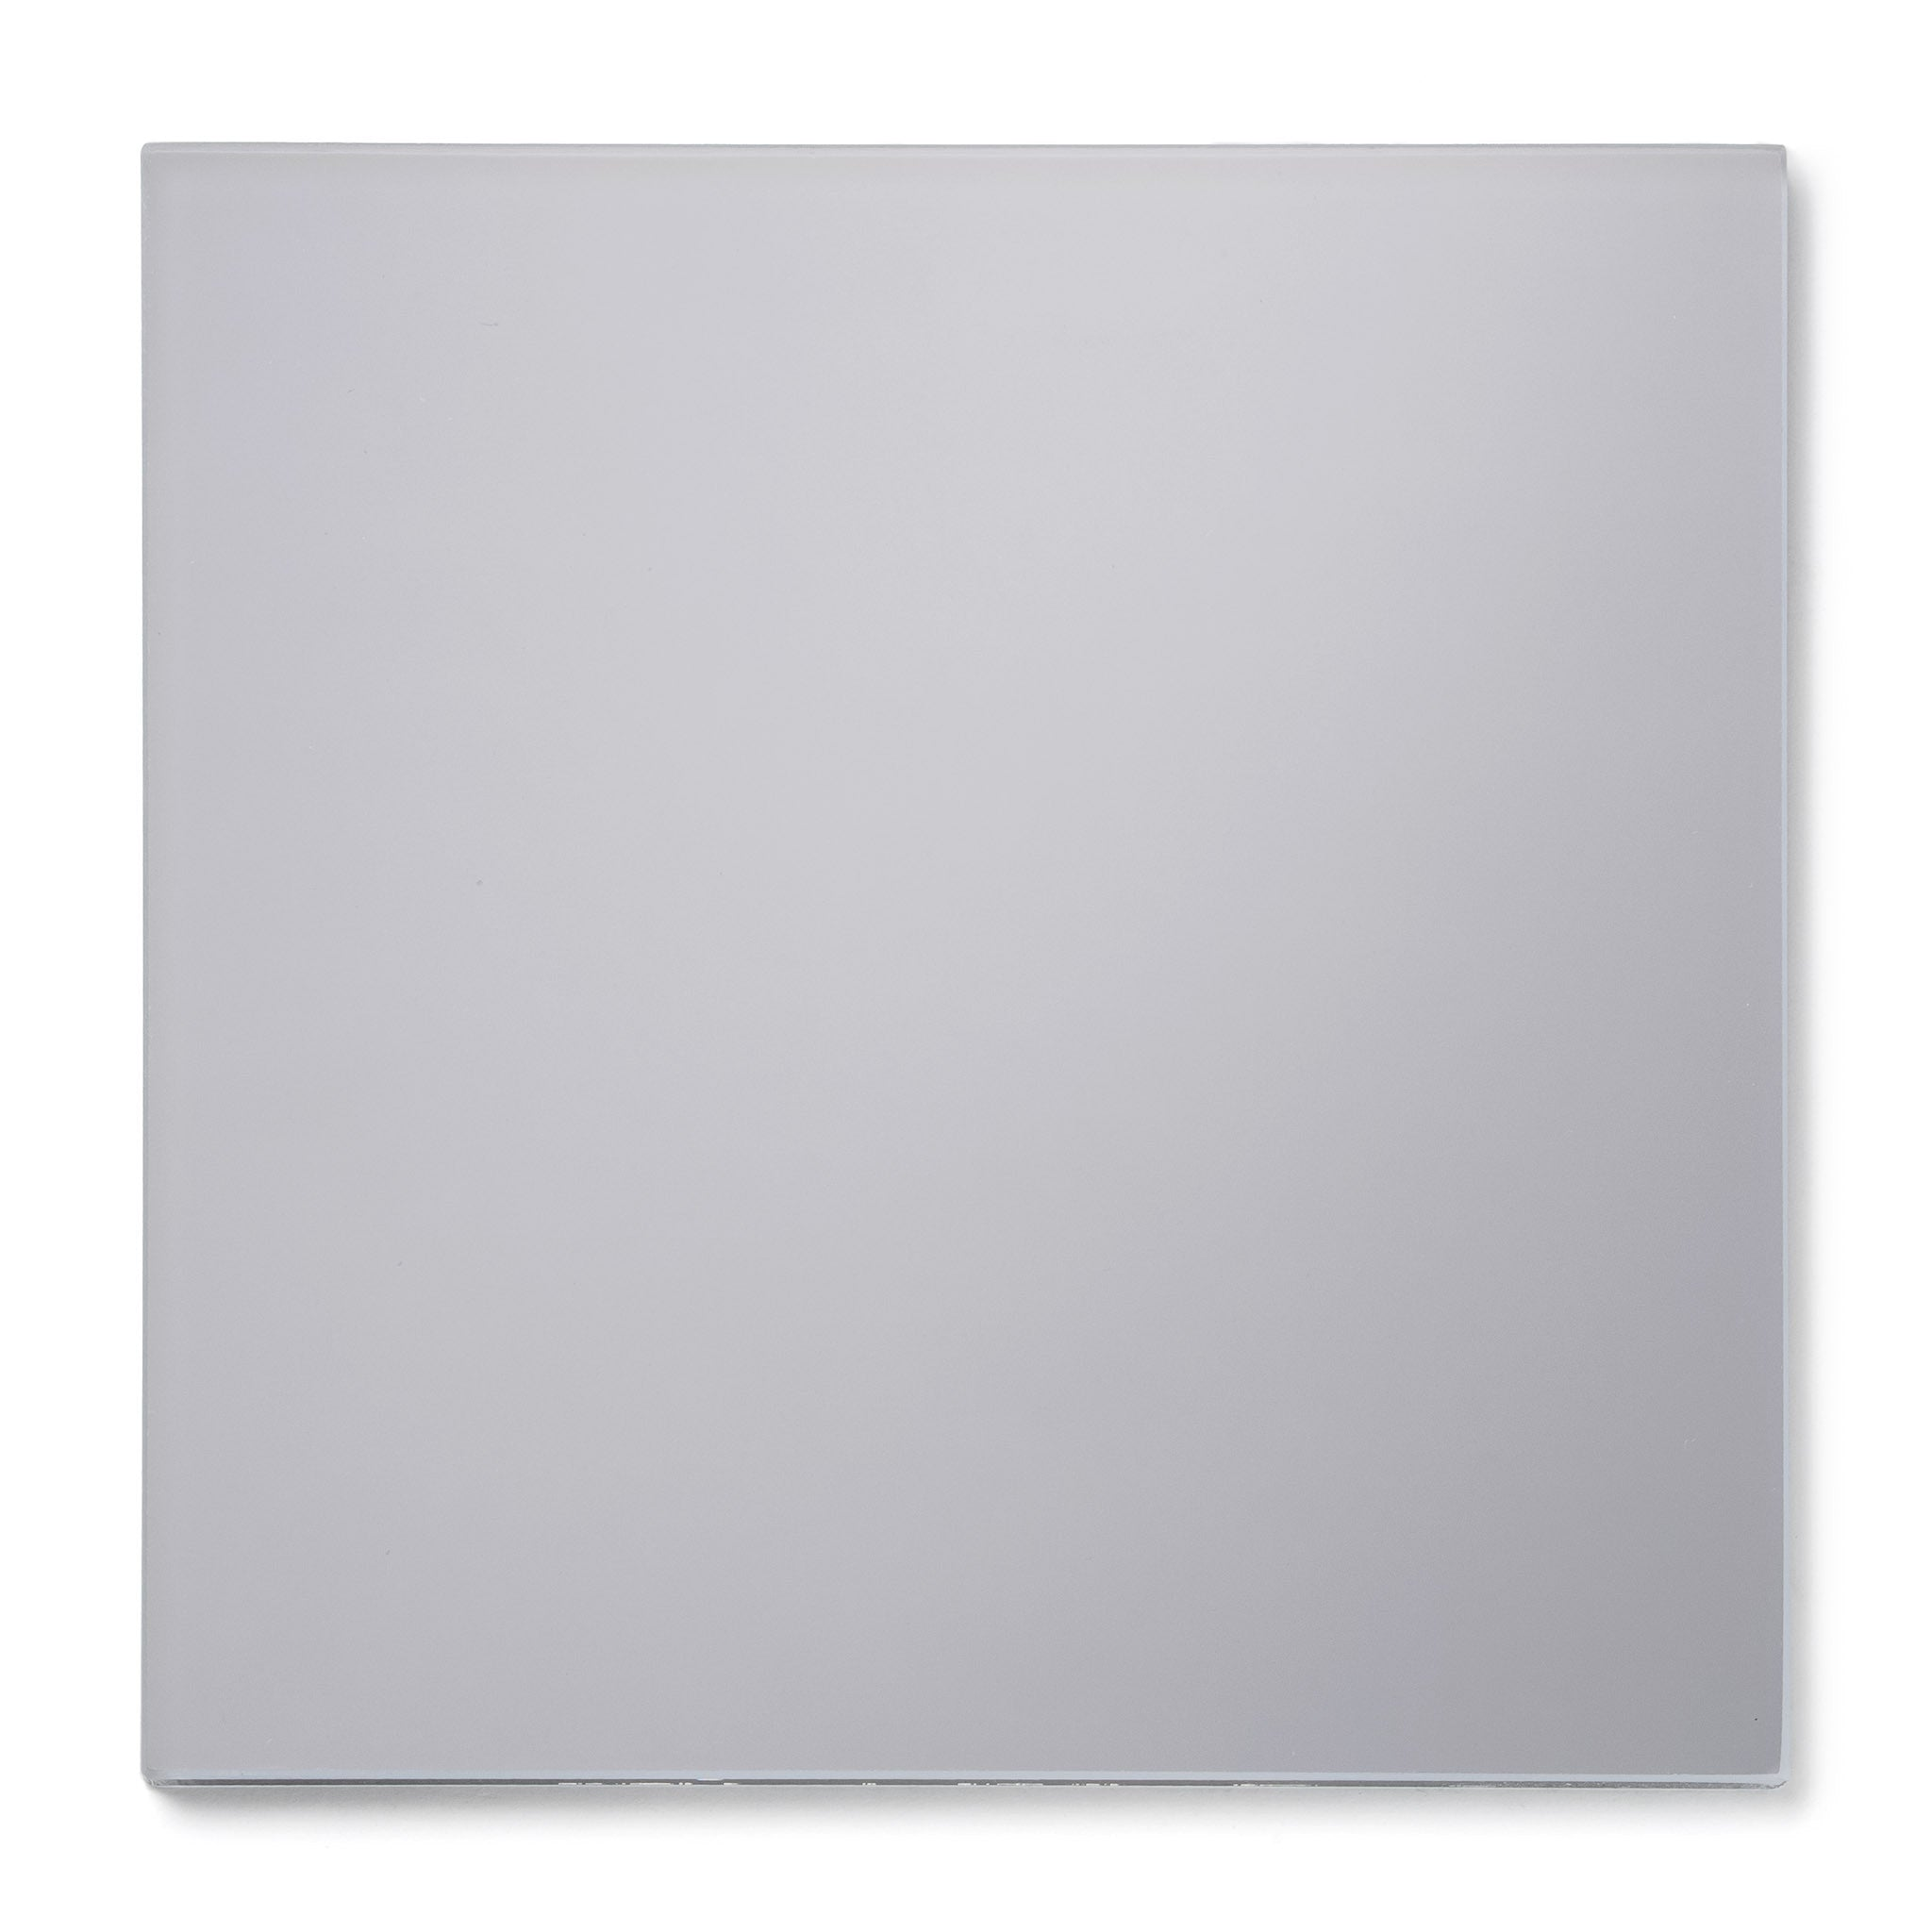 See-Thru / Two-Way Mirror Acrylic Plexiglass Sheet